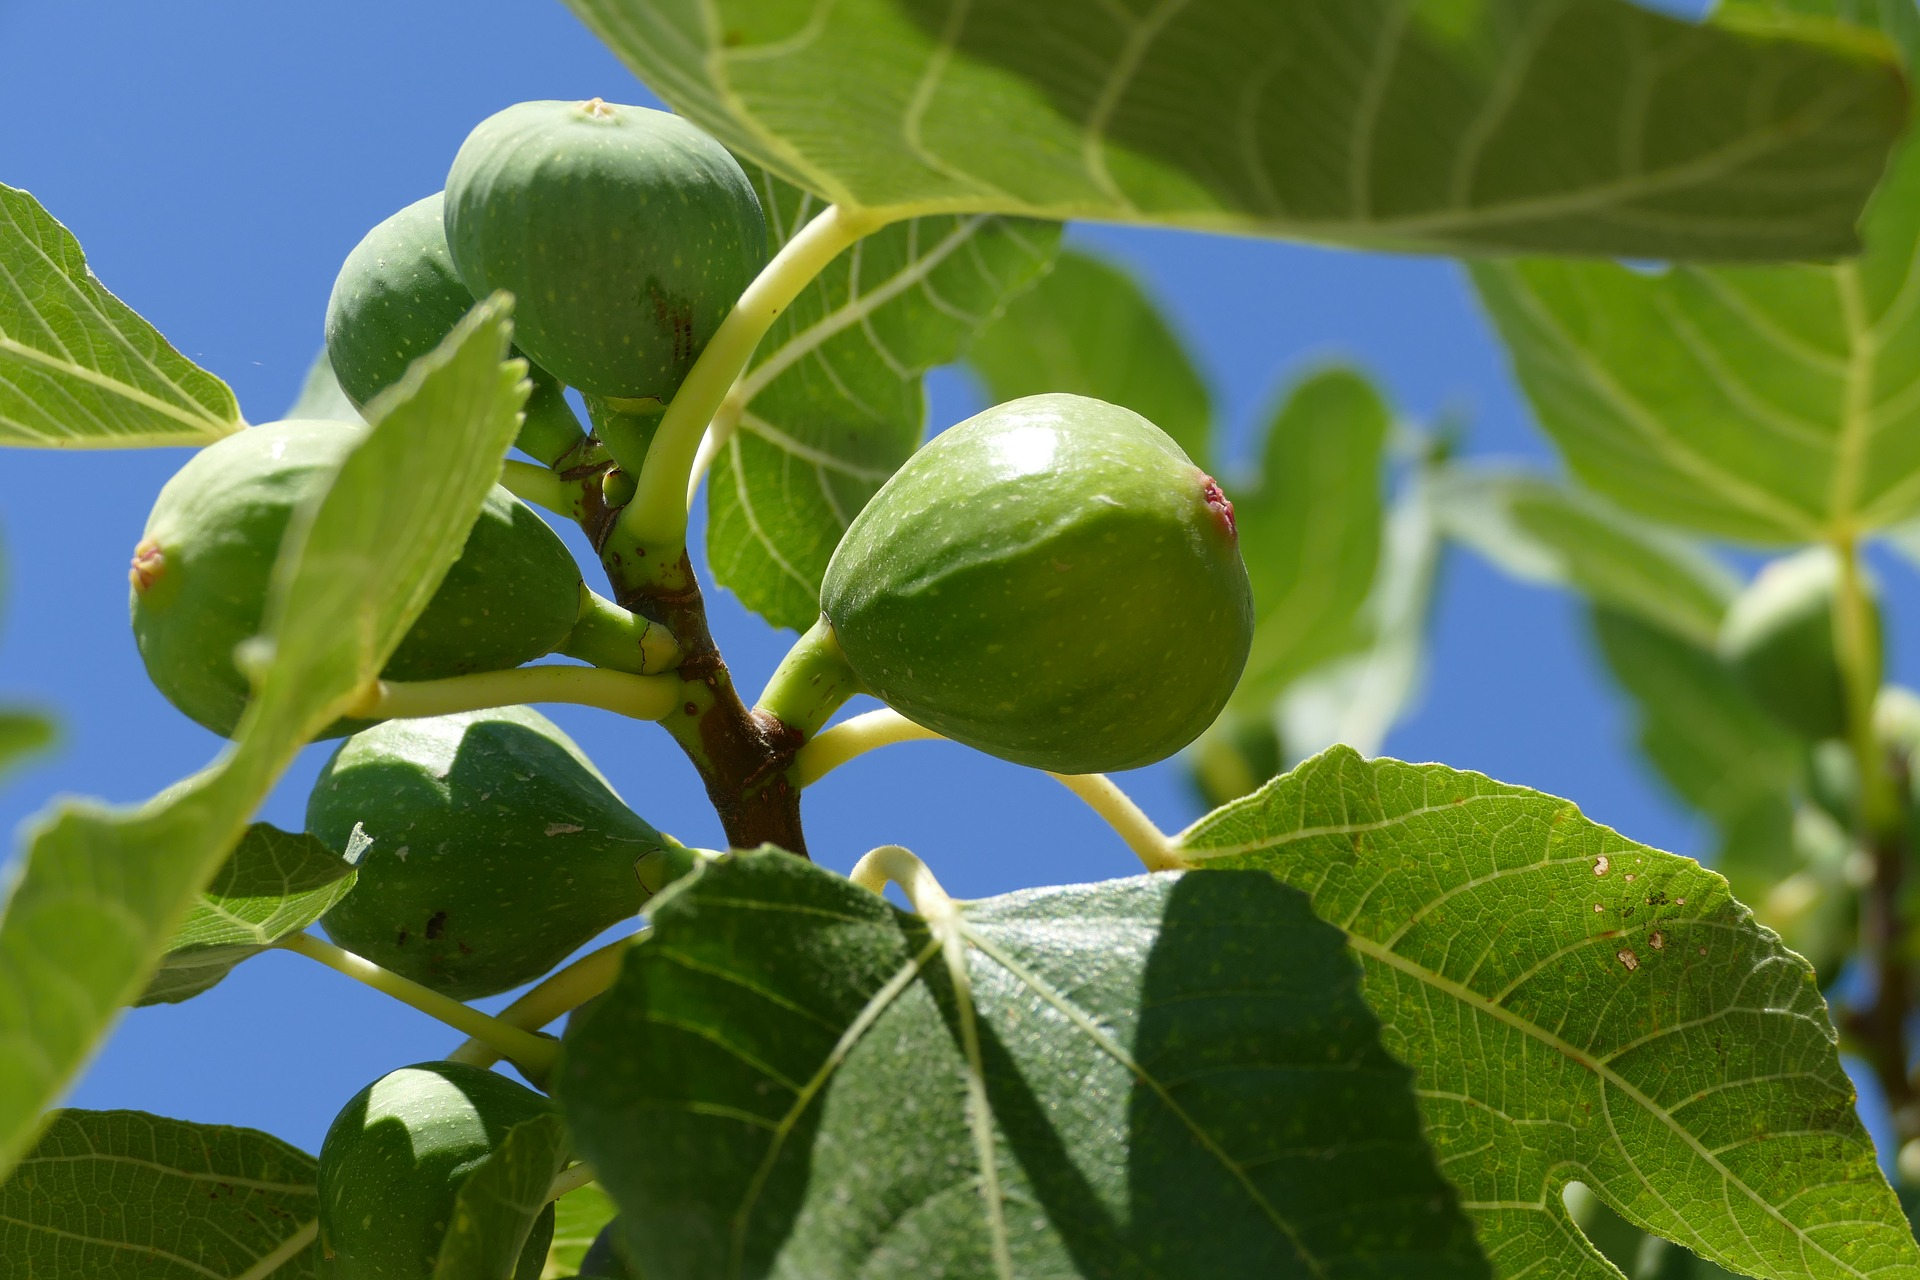 Fig trees are rapidly becoming one of the most popular trees we sell. Not only is the fruit tasty, but the trees lend an architectural element to the garden not found elsewhere.